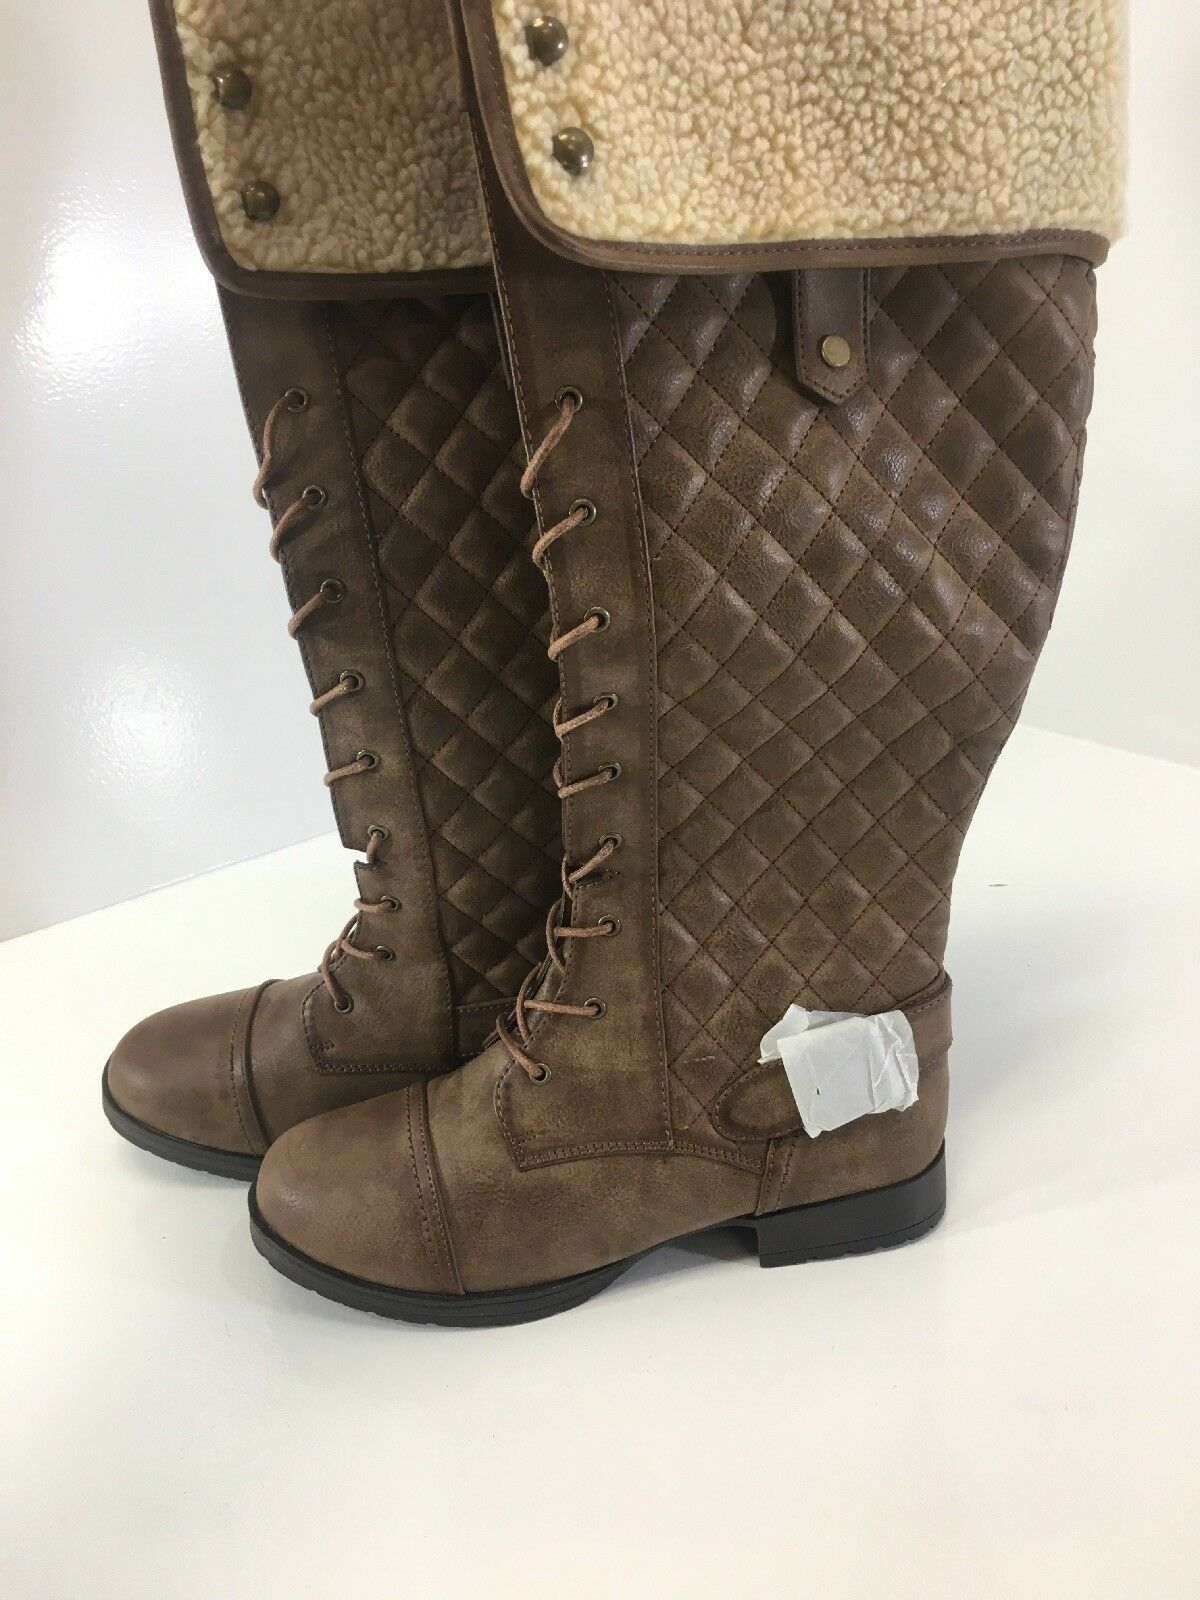 JUSTFAB WOMENS WOMENS WOMENS QUILTED FAUX LEATHER LACE UP KNEE HIGH BOOT BROWN US 8 NEW 3623db